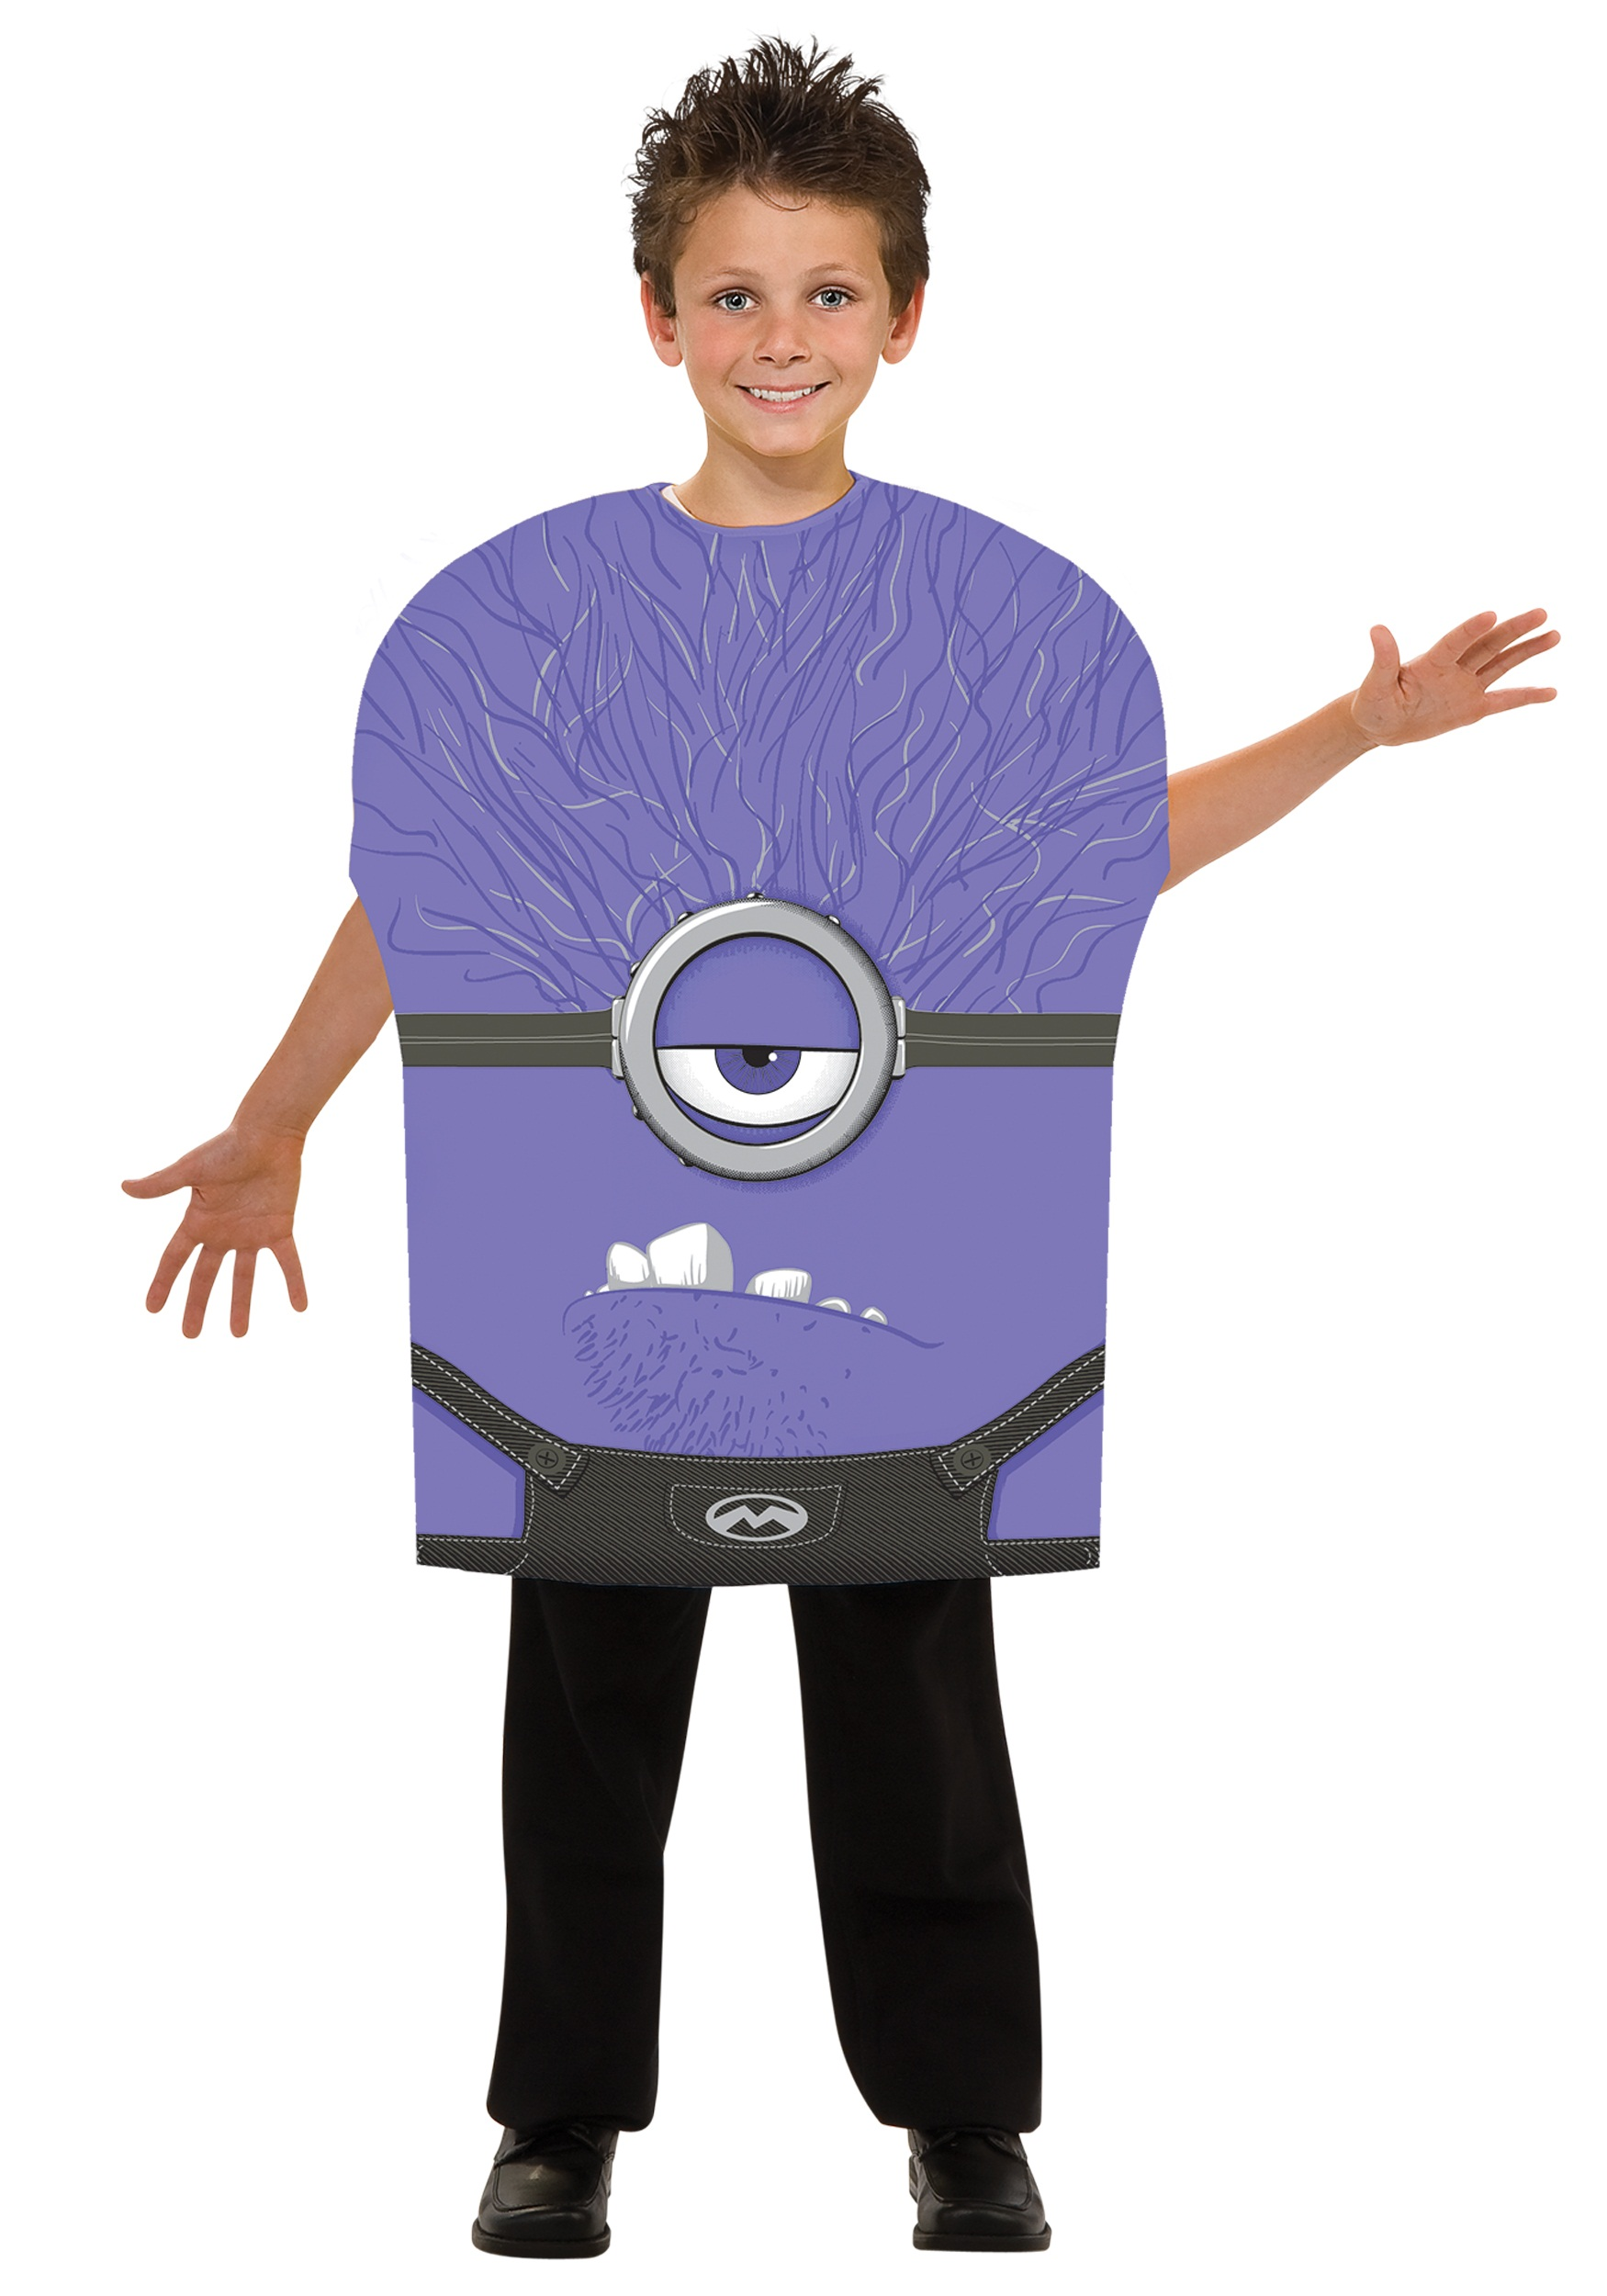 Kids Despicable Me 2 Evil Minion Costume  sc 1 st  Halloween Costumes & Kids Despicable Me 2 Evil Minion Costume - Halloween Costumes